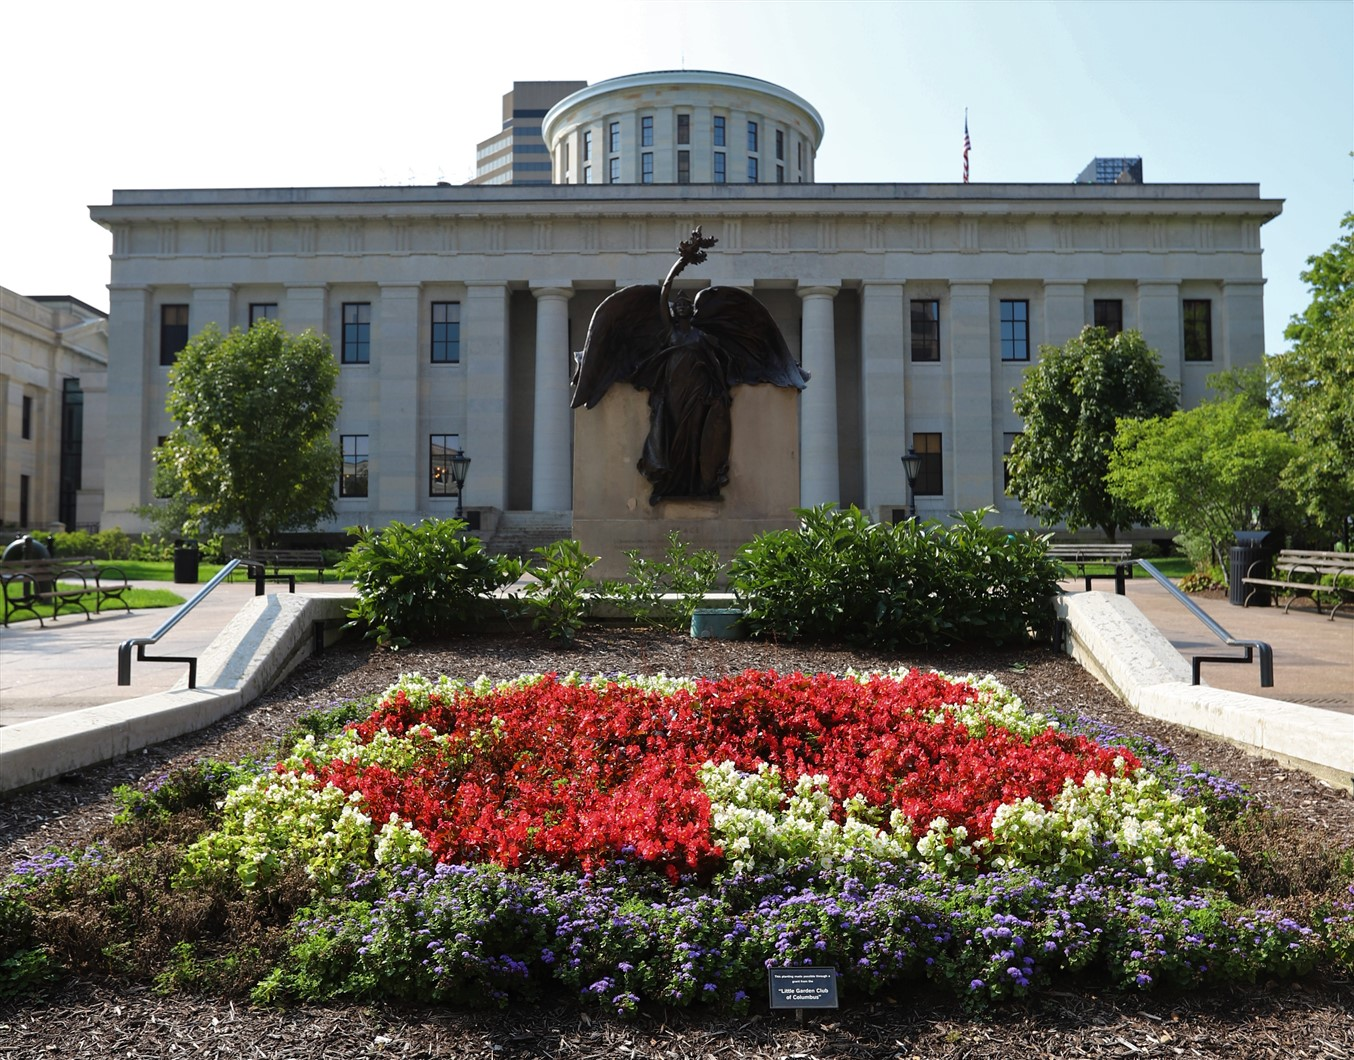 2018 08 19 41 Columbus Statehouse Grounds.jpg